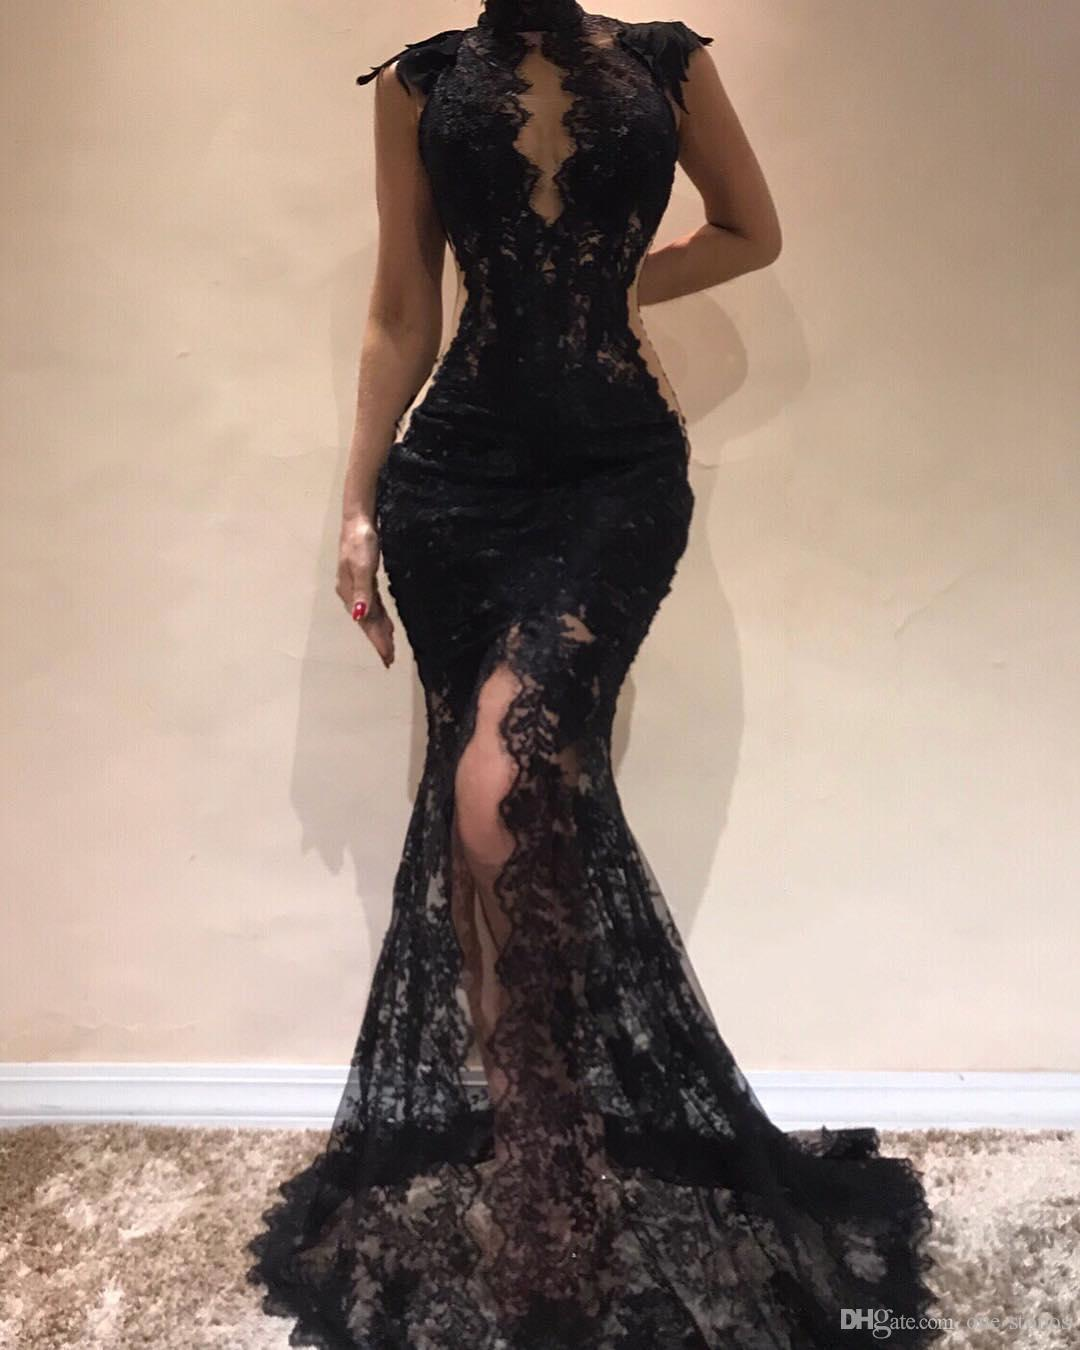 Black Full Lace Prom Dress High Slit Sexy Evening Dress Beaded Sheer Lace Party Sexy Mermiad Dresses Custom Made